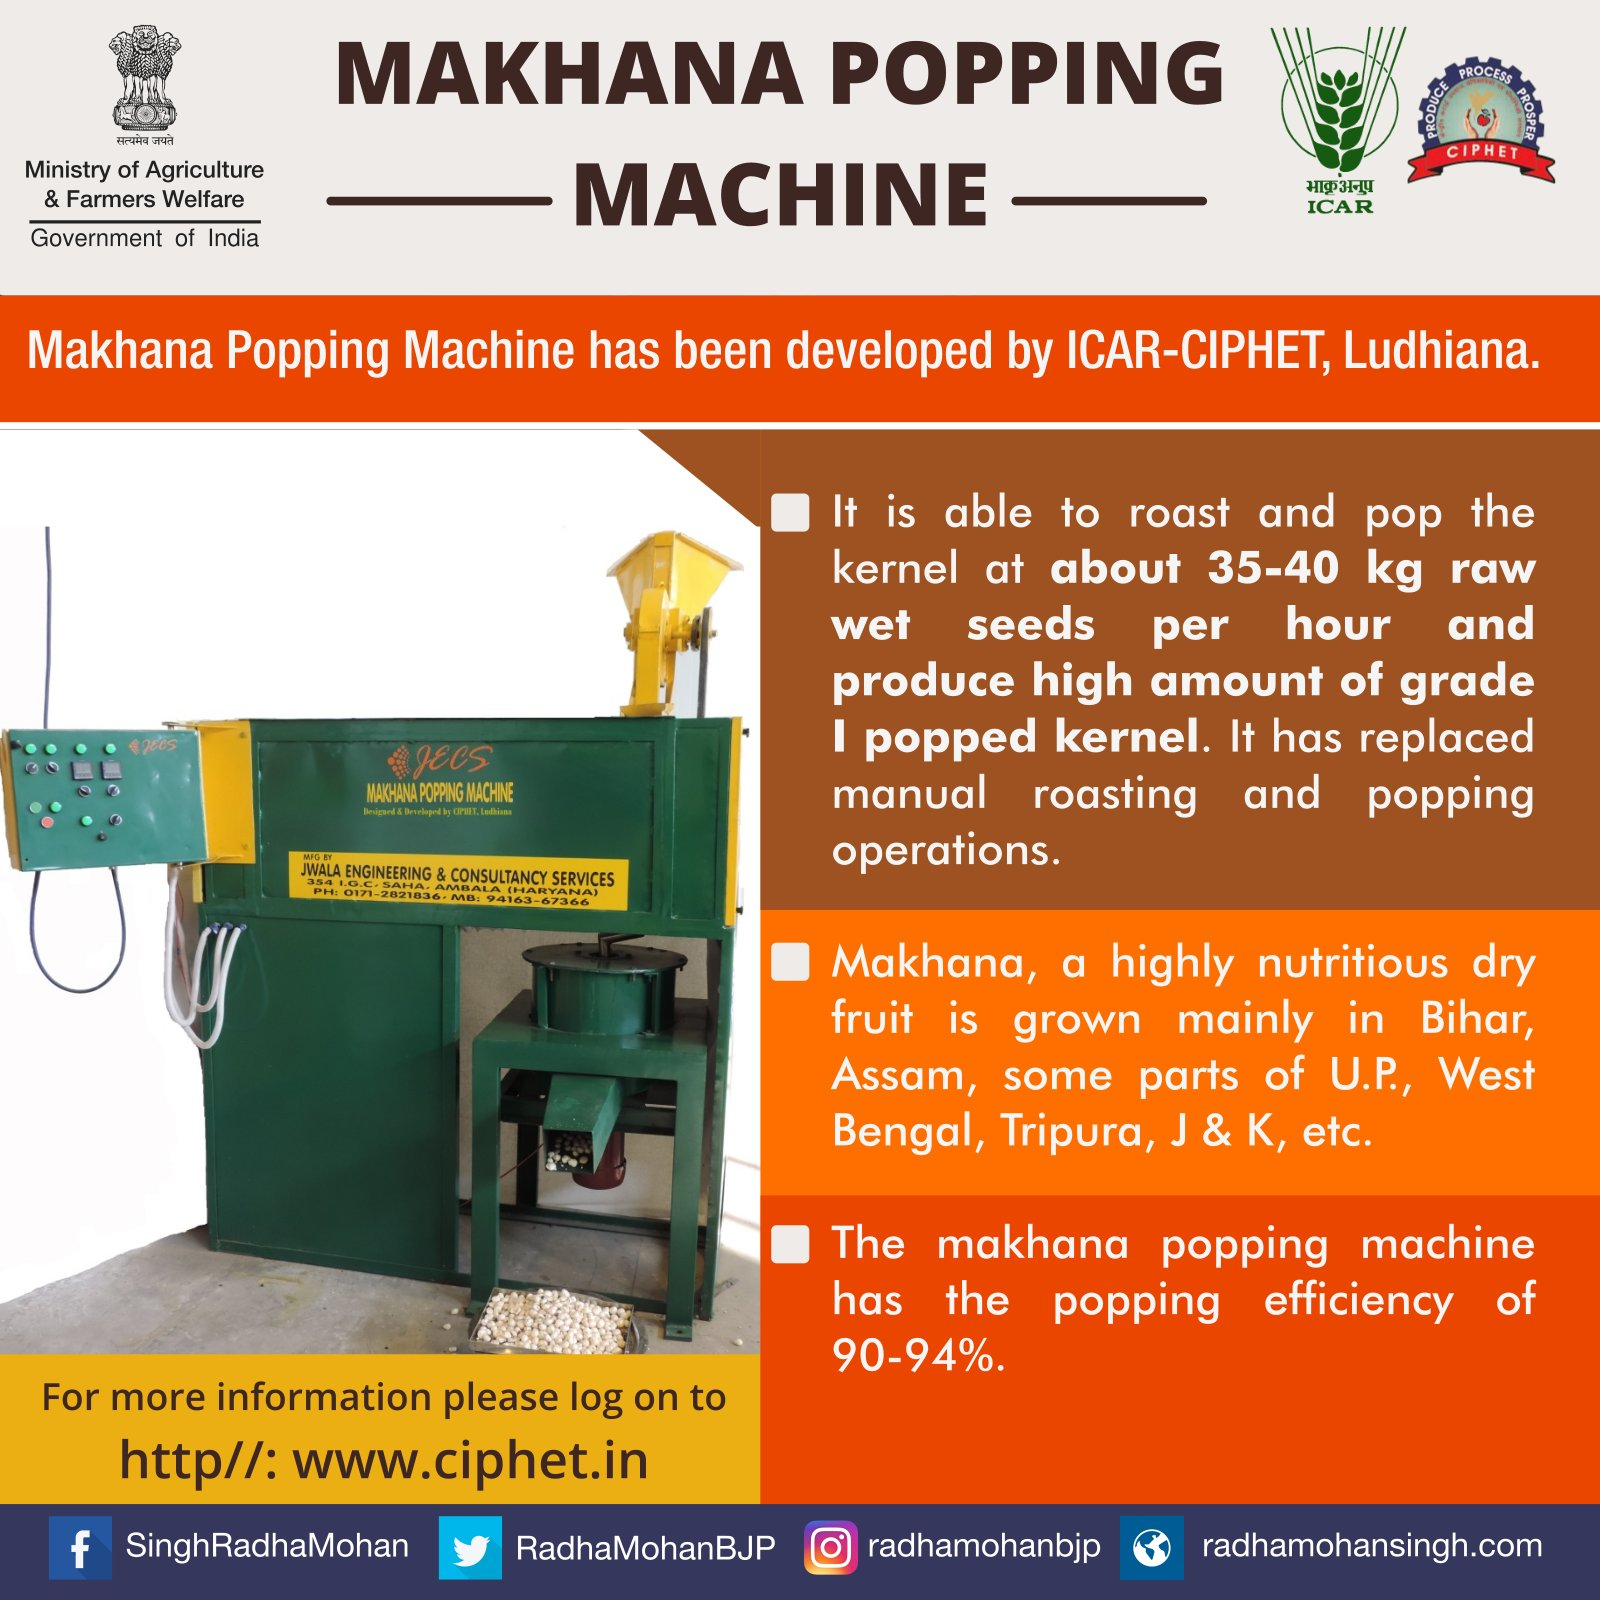 MoA&FW Marches Ahead: Makhana Popping machine has been developed by ICAR-CIPHET, Ludhiana. #TransformingIndia https://t.co/LlXSQwi0AU